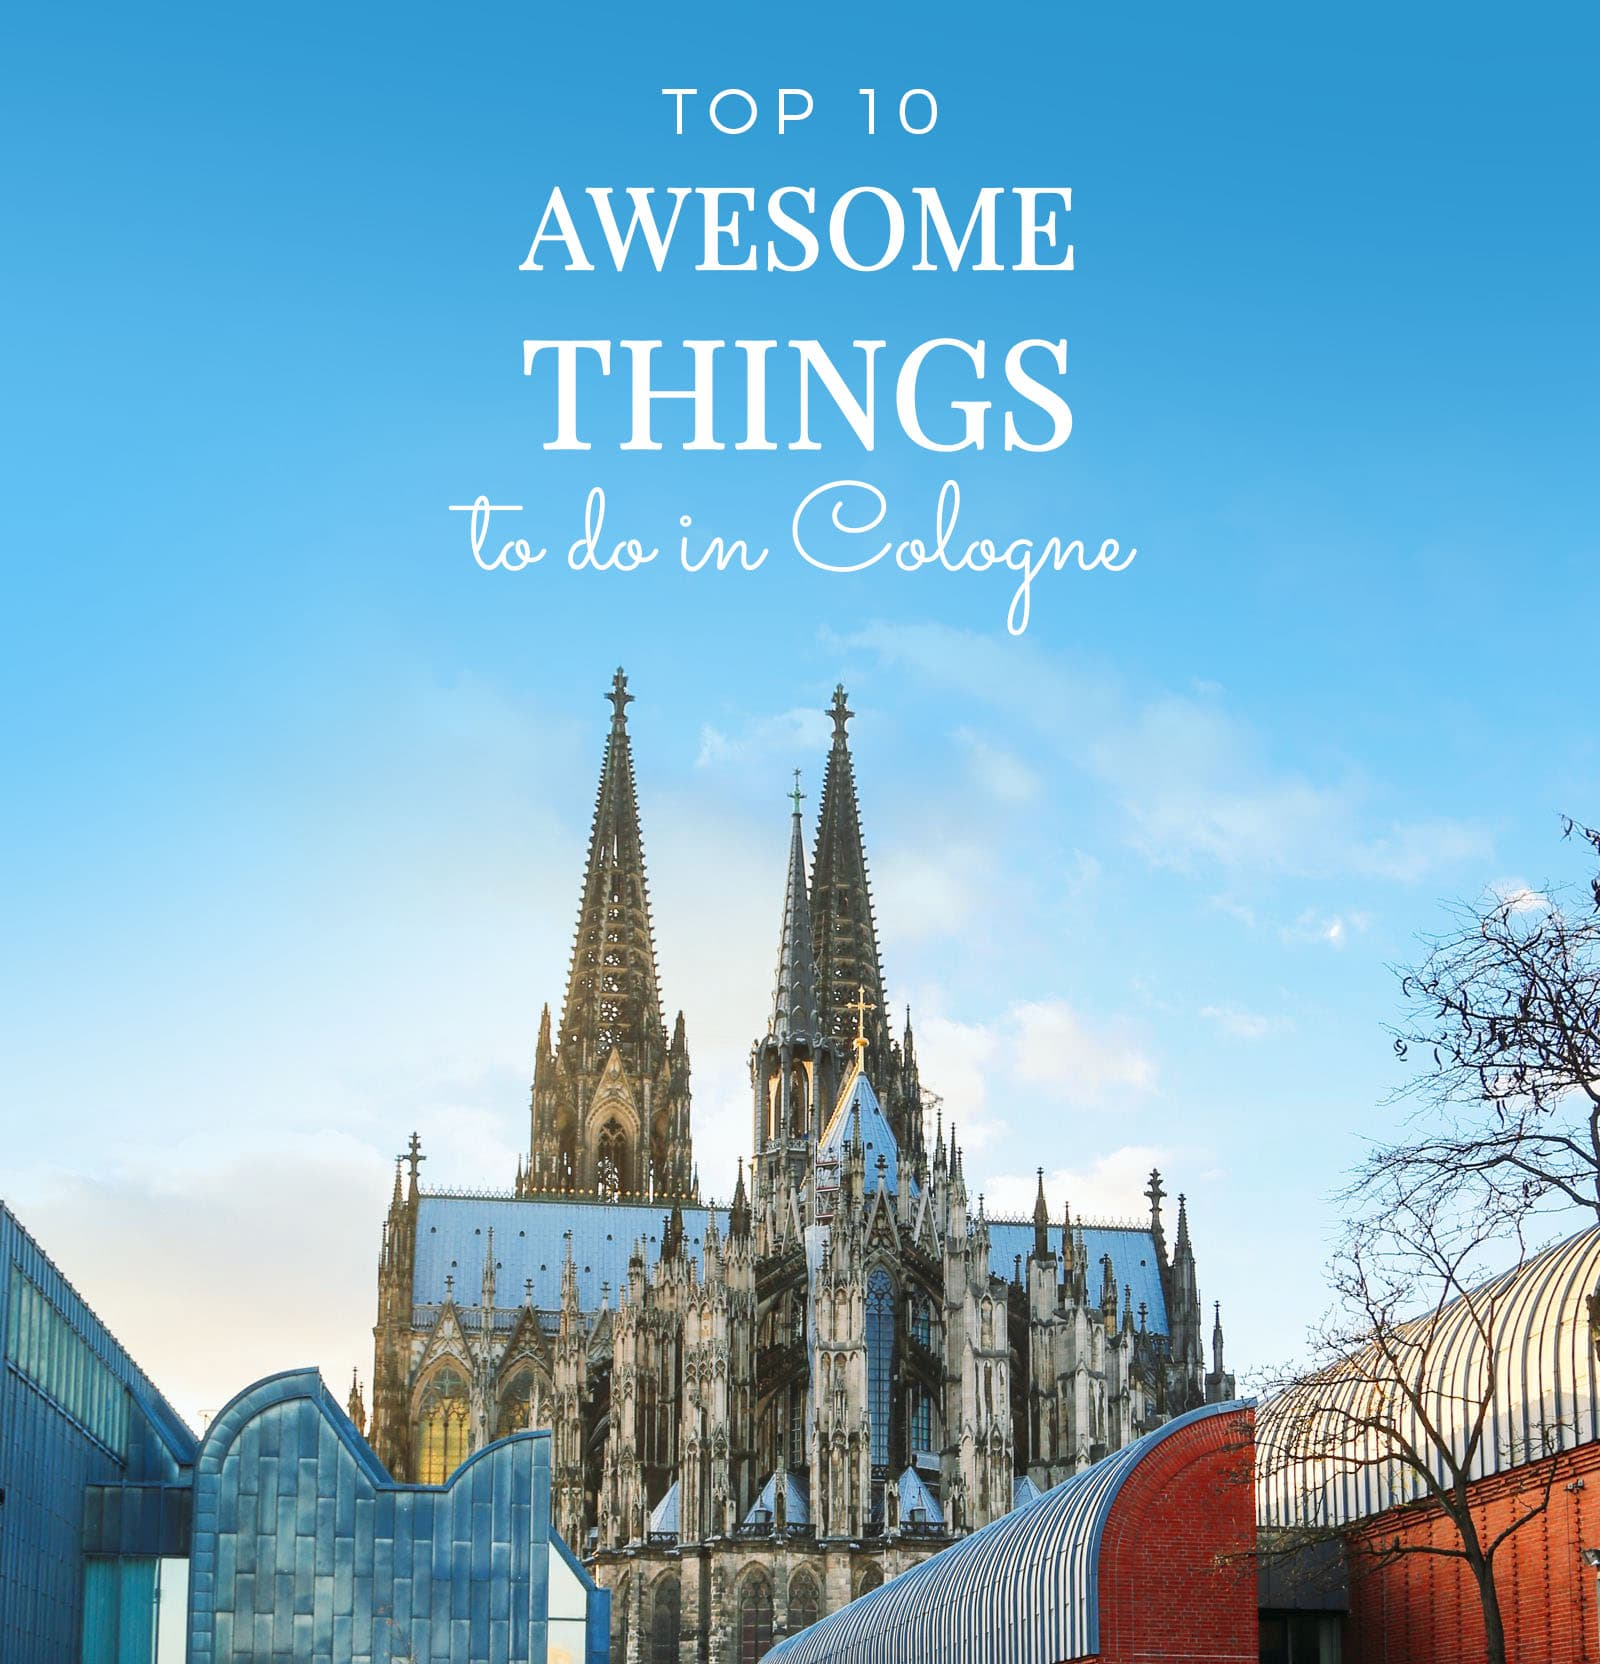 10 awesome things to do in Cologne